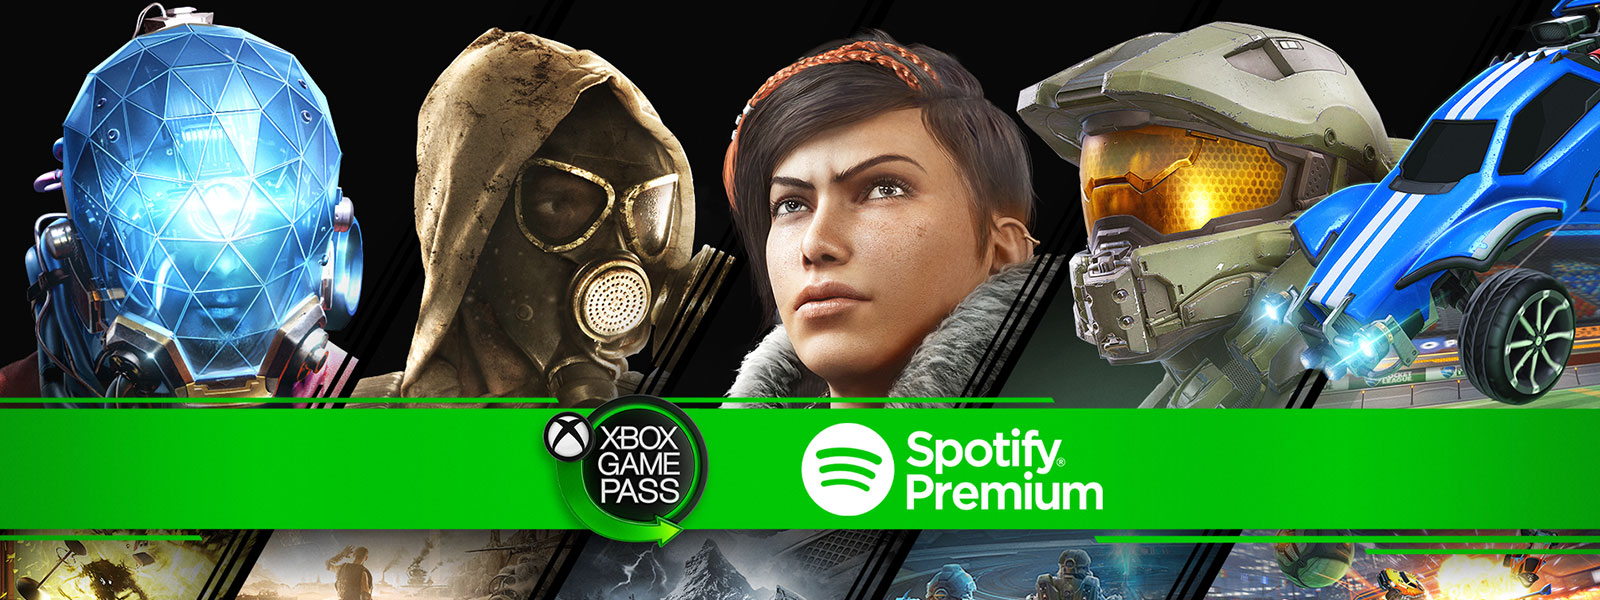 Xbox Game Pass and Spotify logos against a collage of characters and images from Xbox One games. Prey, Metro: Last Light Redux, Gears 5, Halo Infinite, and Rocket League.